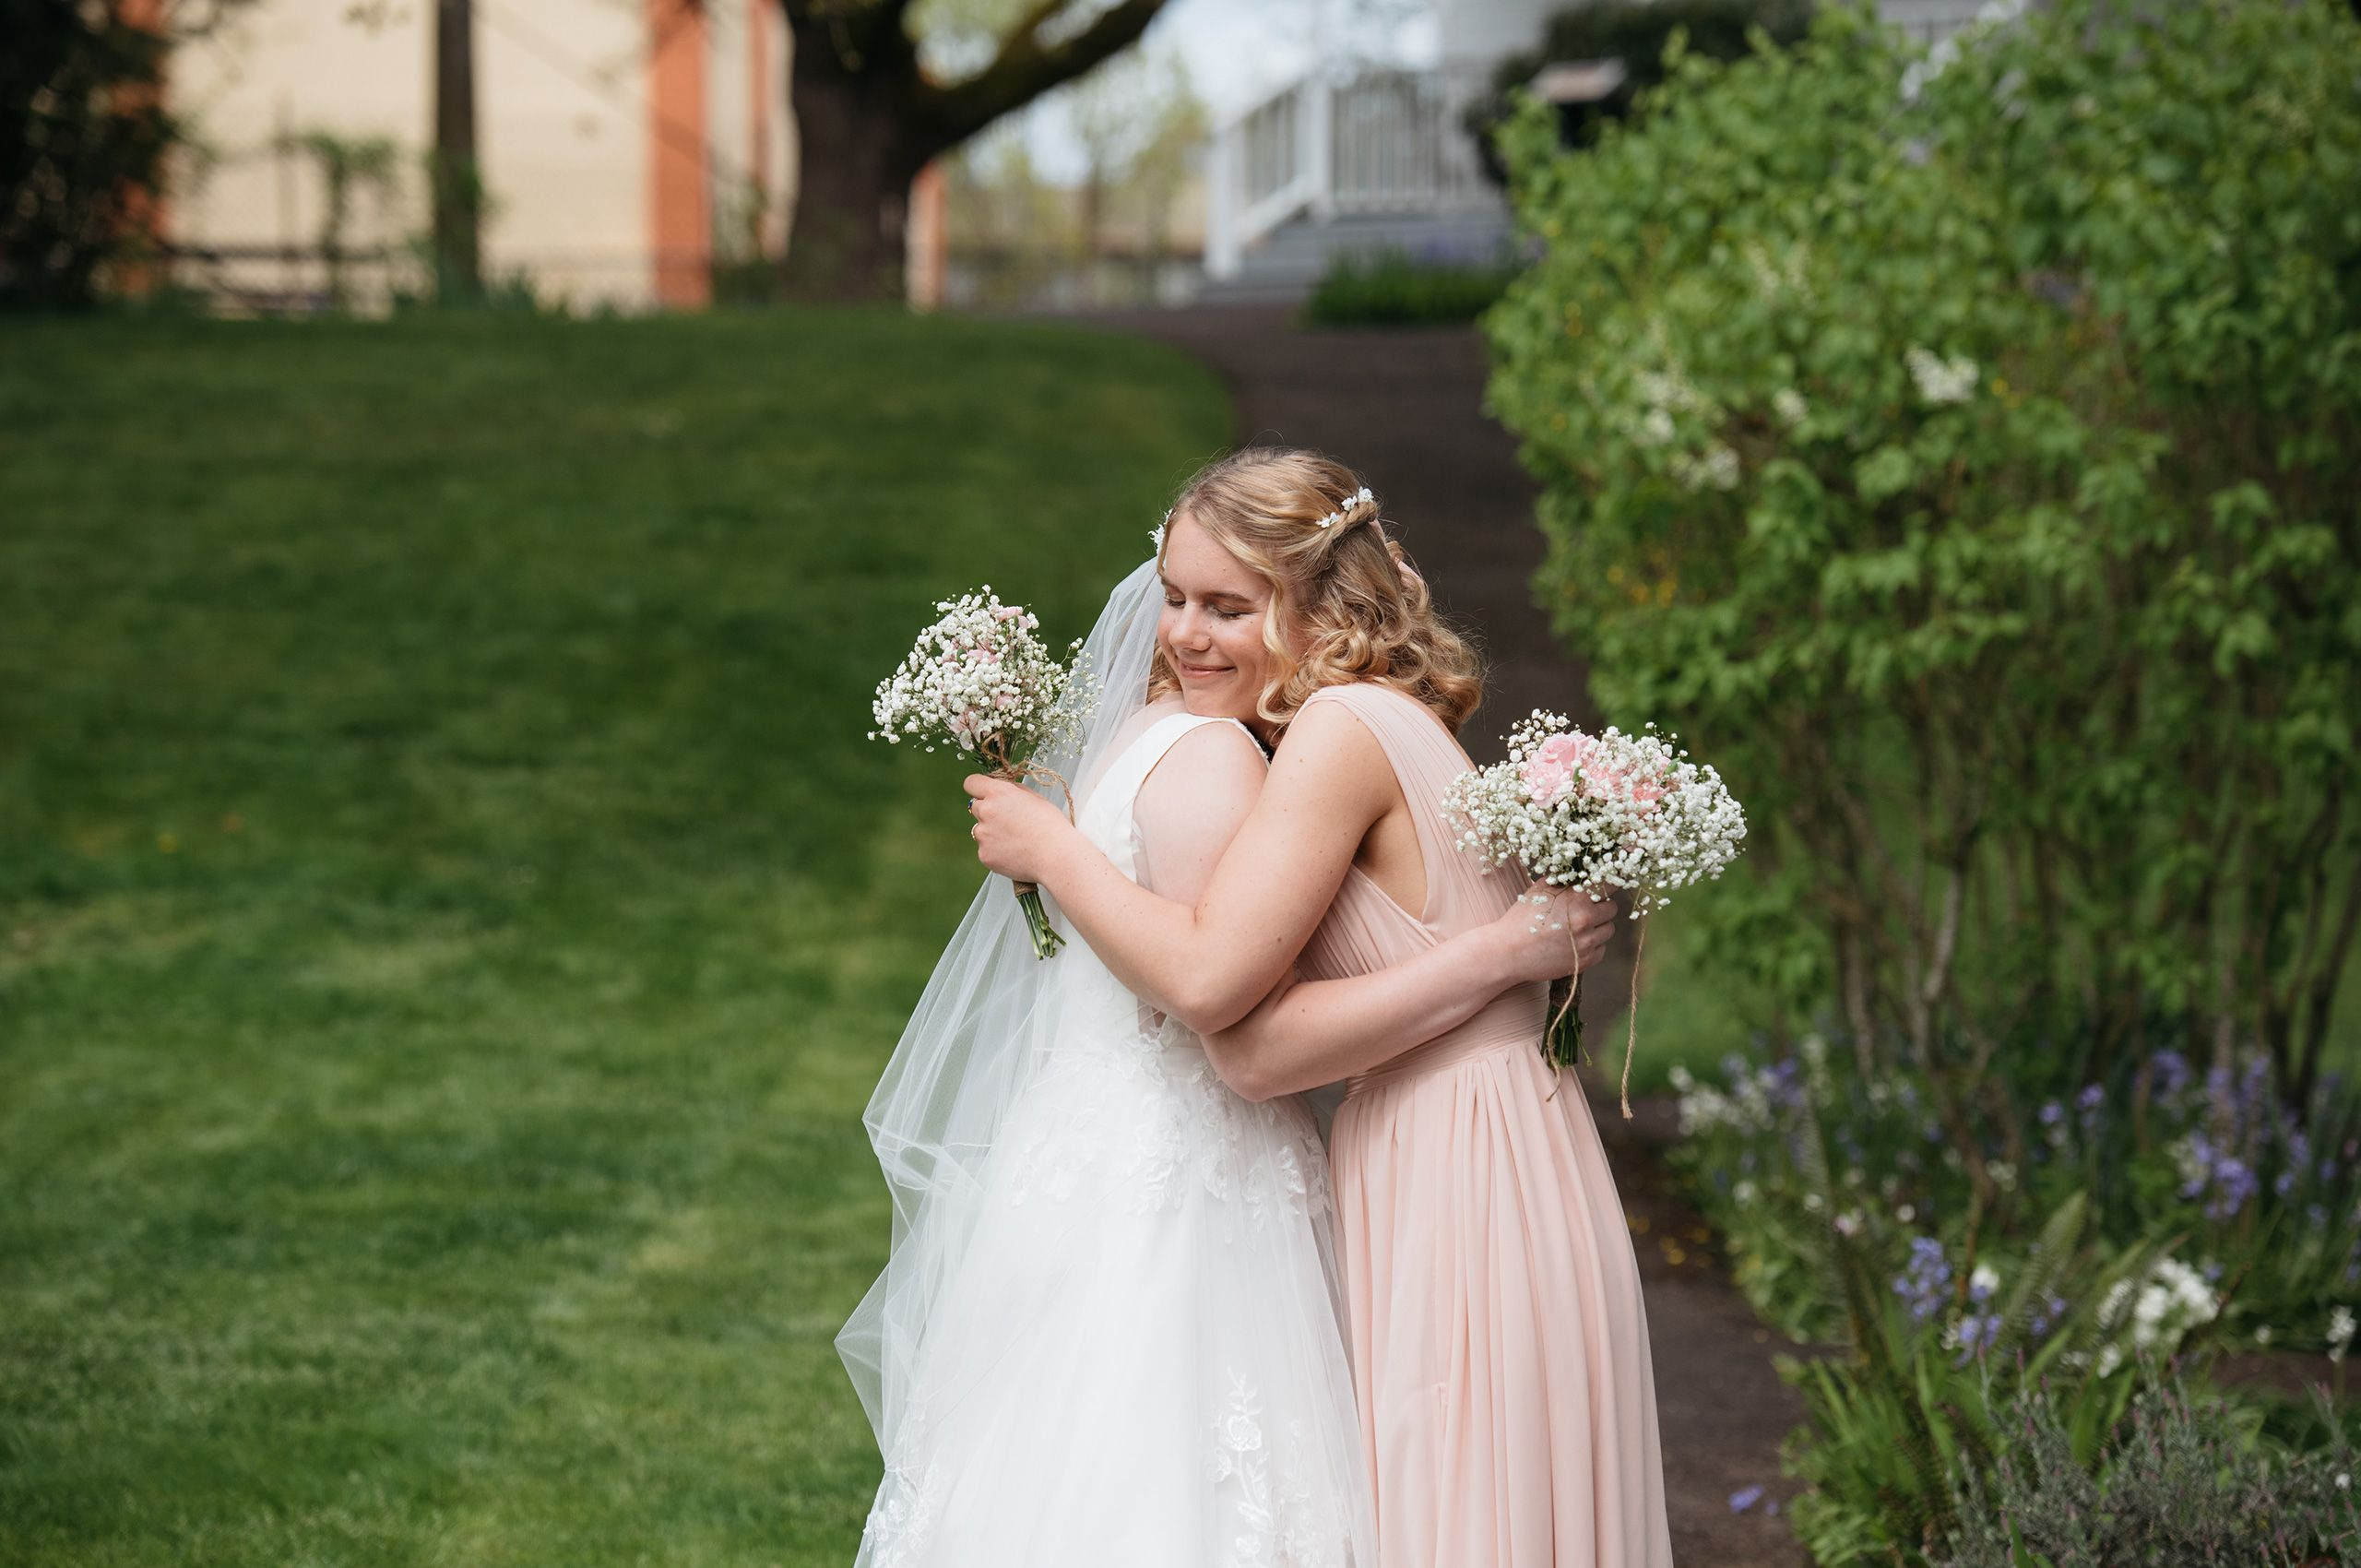 blogwedding-36937.jpg